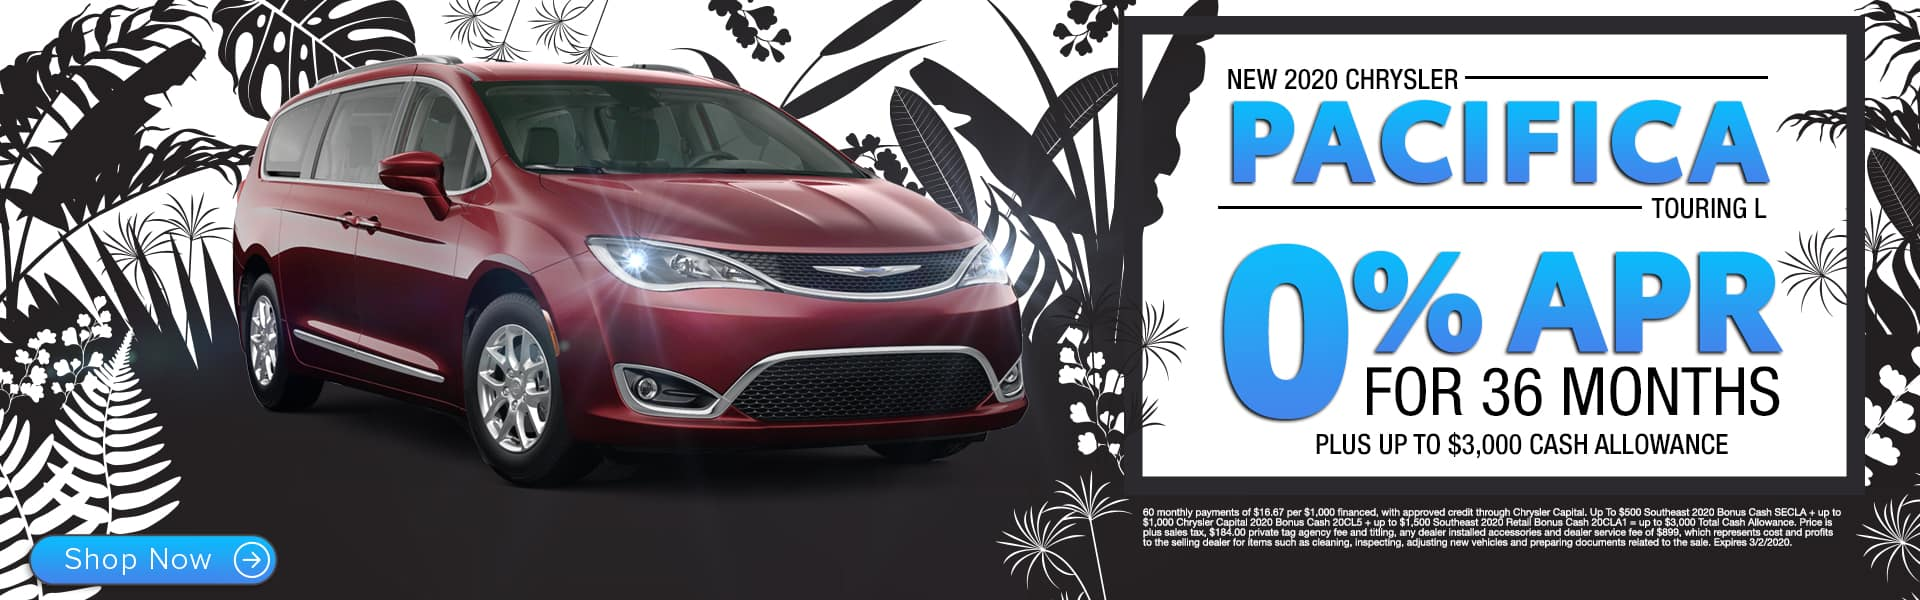 New 2020 Chrysler Pacifica Touring L | 0% APR For 36 Months Plus Up To $3,000 Cash Allowance